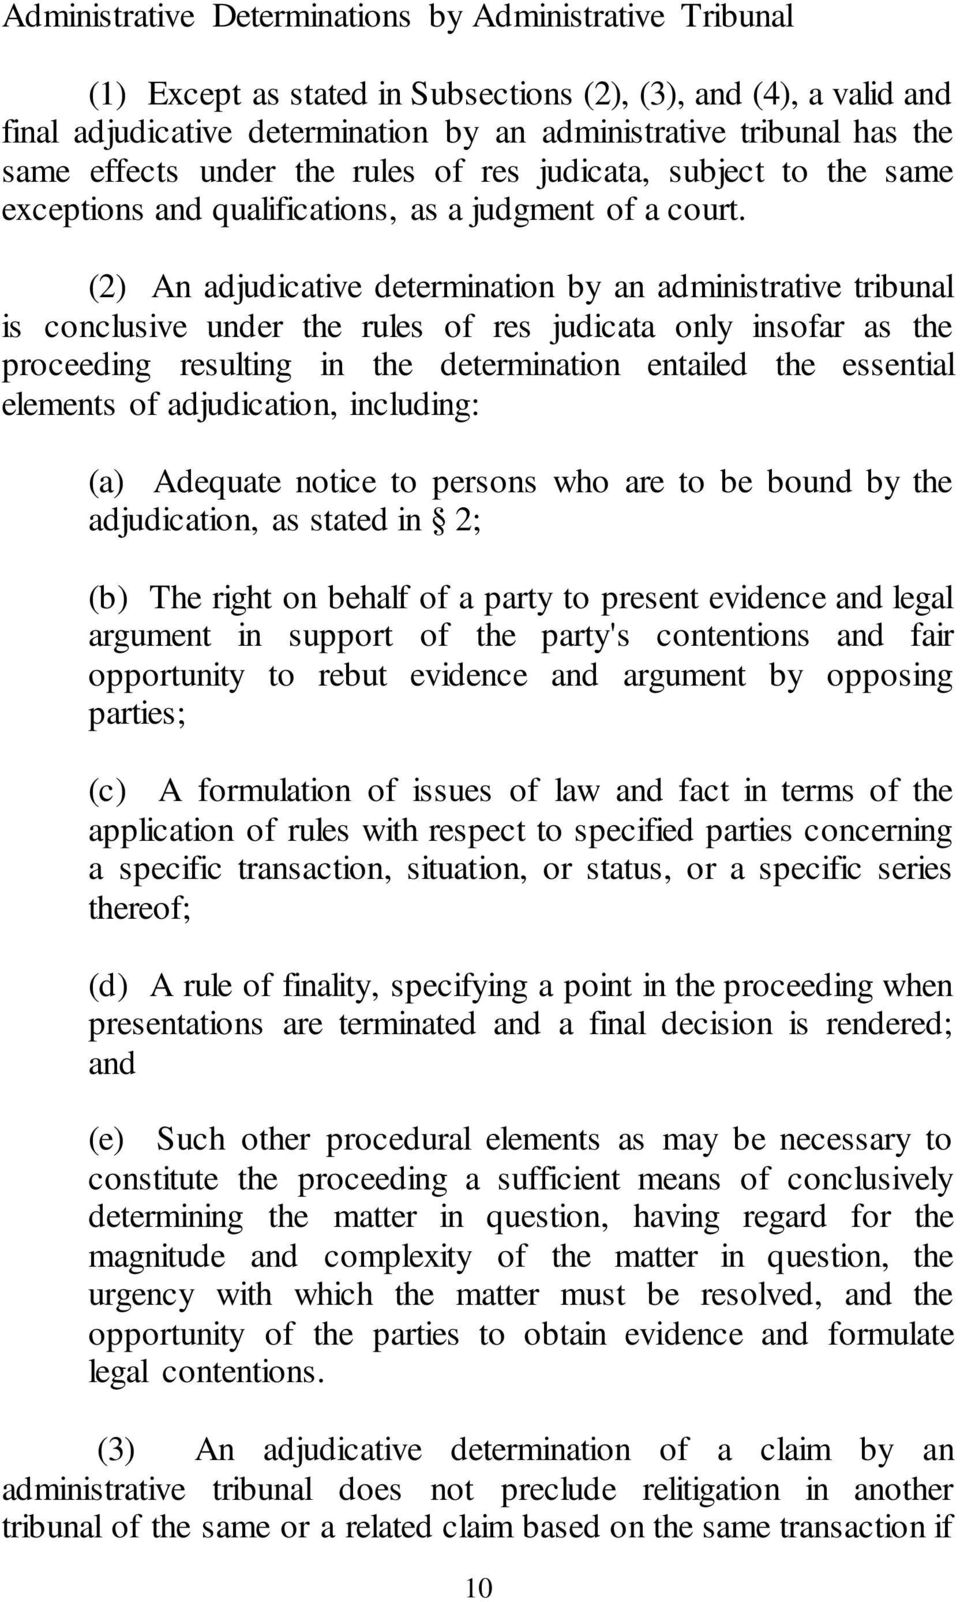 (2) An adjudicative determination by an administrative tribunal is conclusive under the rules of res judicata only insofar as the proceeding resulting in the determination entailed the essential